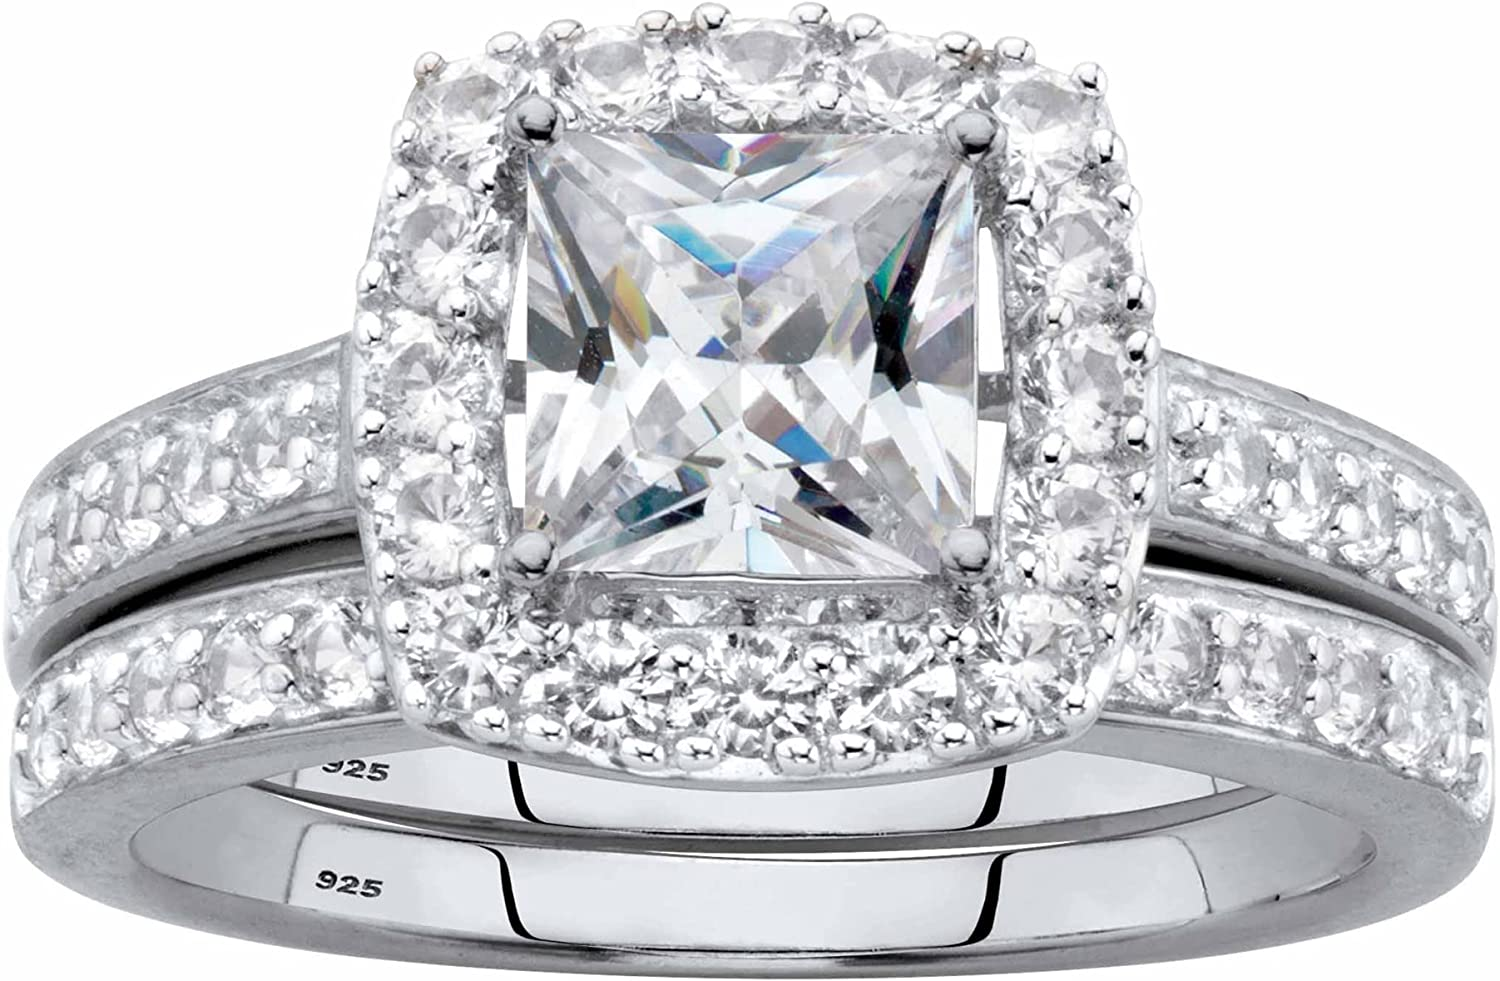 18K Gold-Plated or Platinum-Plated Cut Opening large release sale Sterling Max 49% OFF Silver Princess